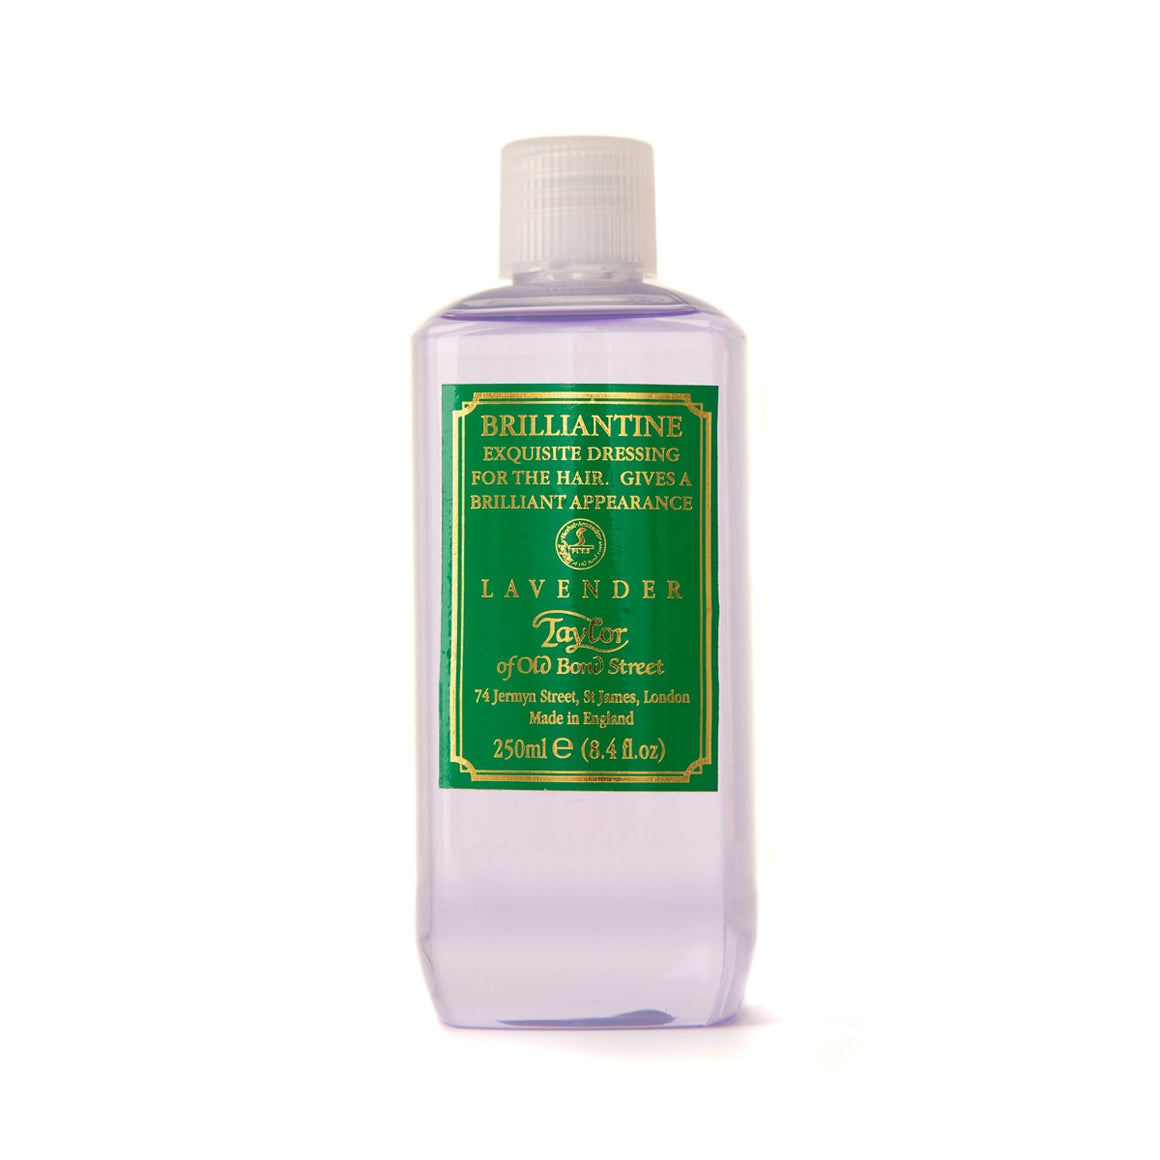 Taylor of Old Bond Street Lavender Brilliantine 250ml